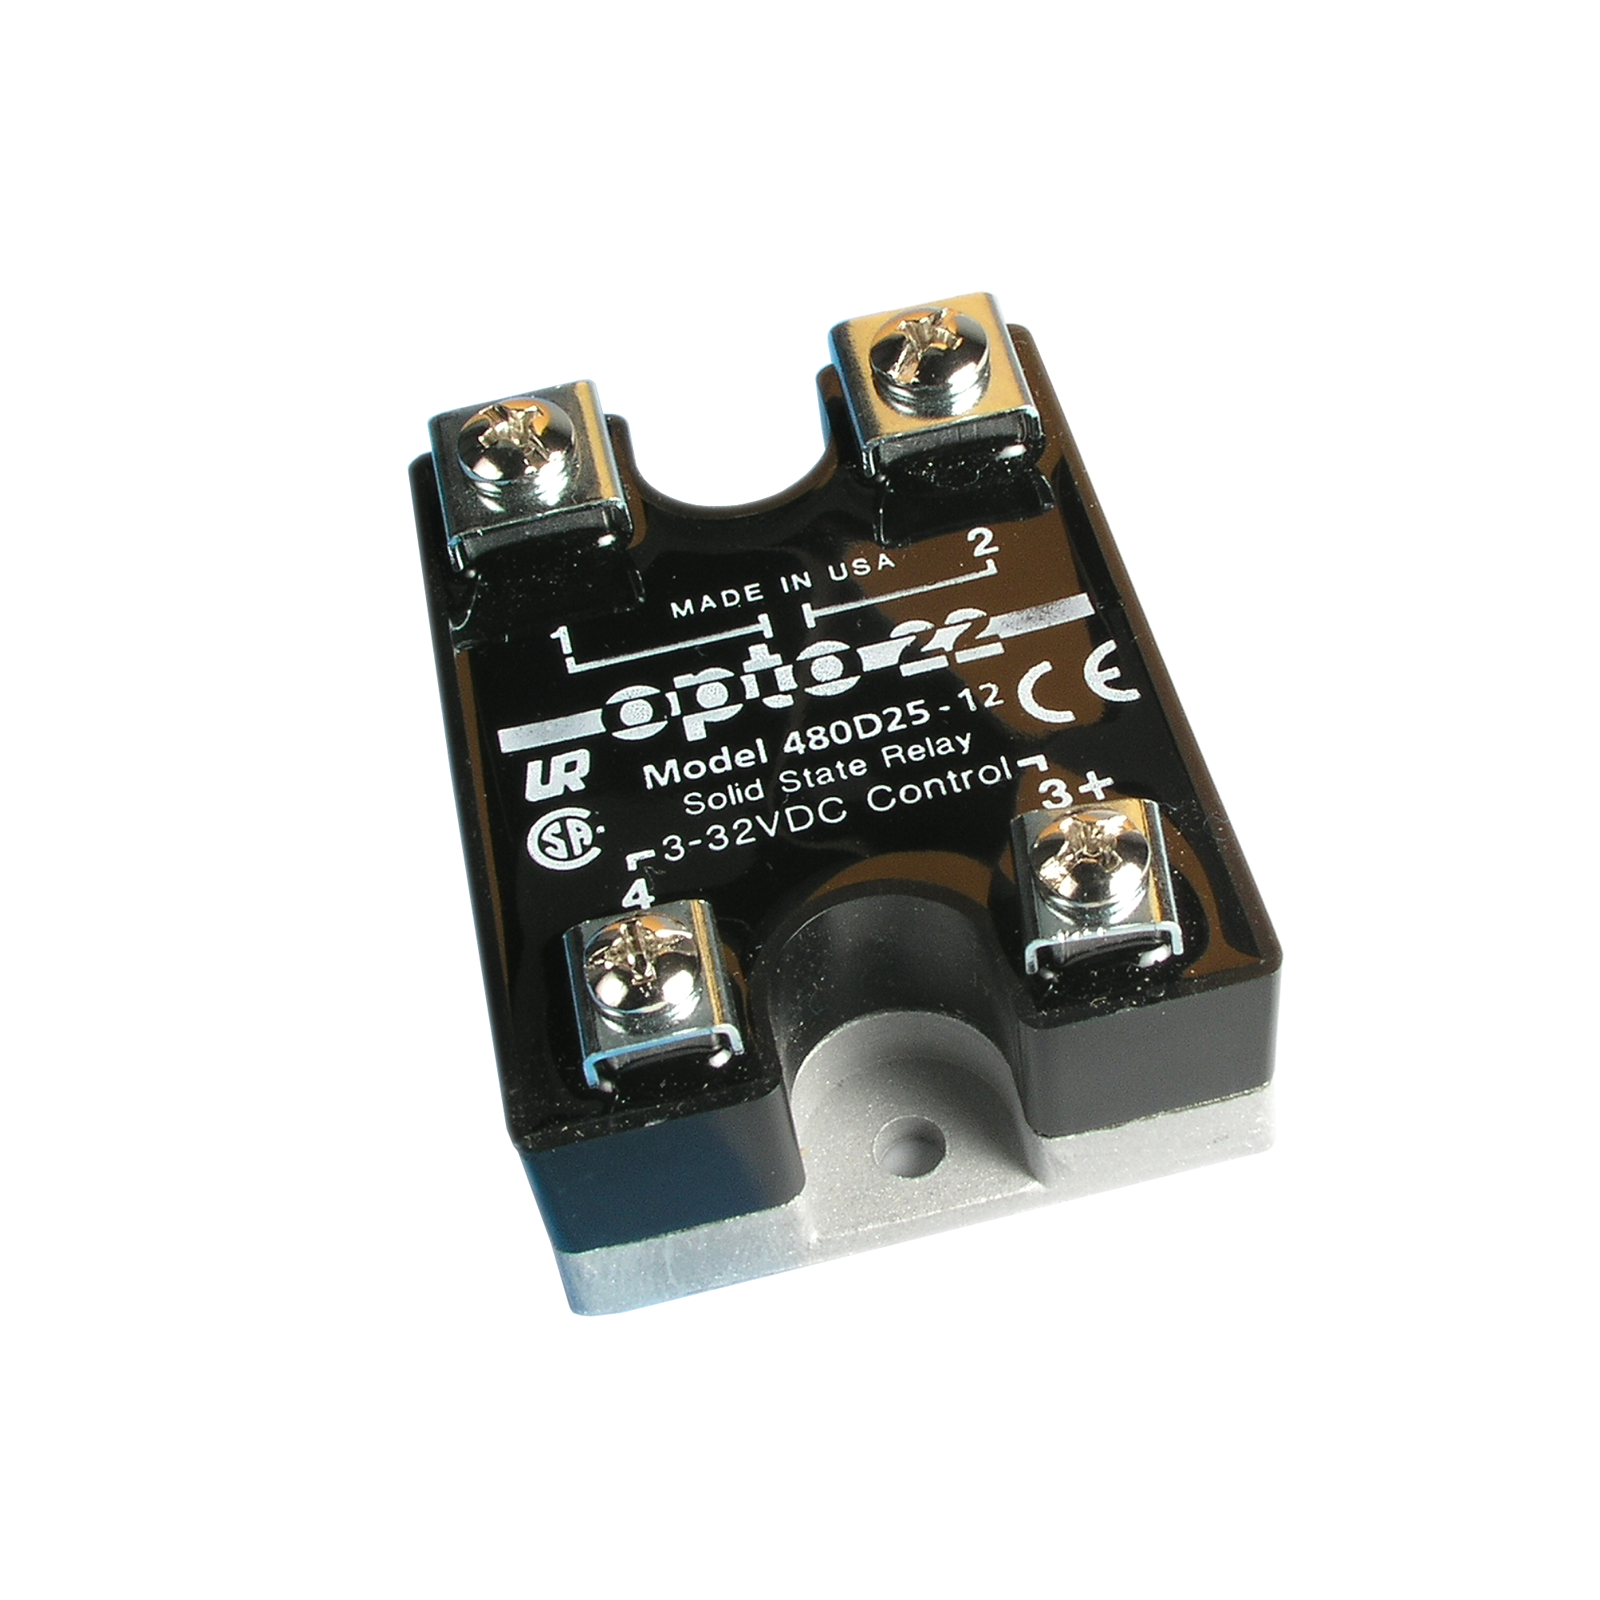 Opto22 480d25 12 480 Vac 25 Amp Dc Control Solid State Relay Basic Relays